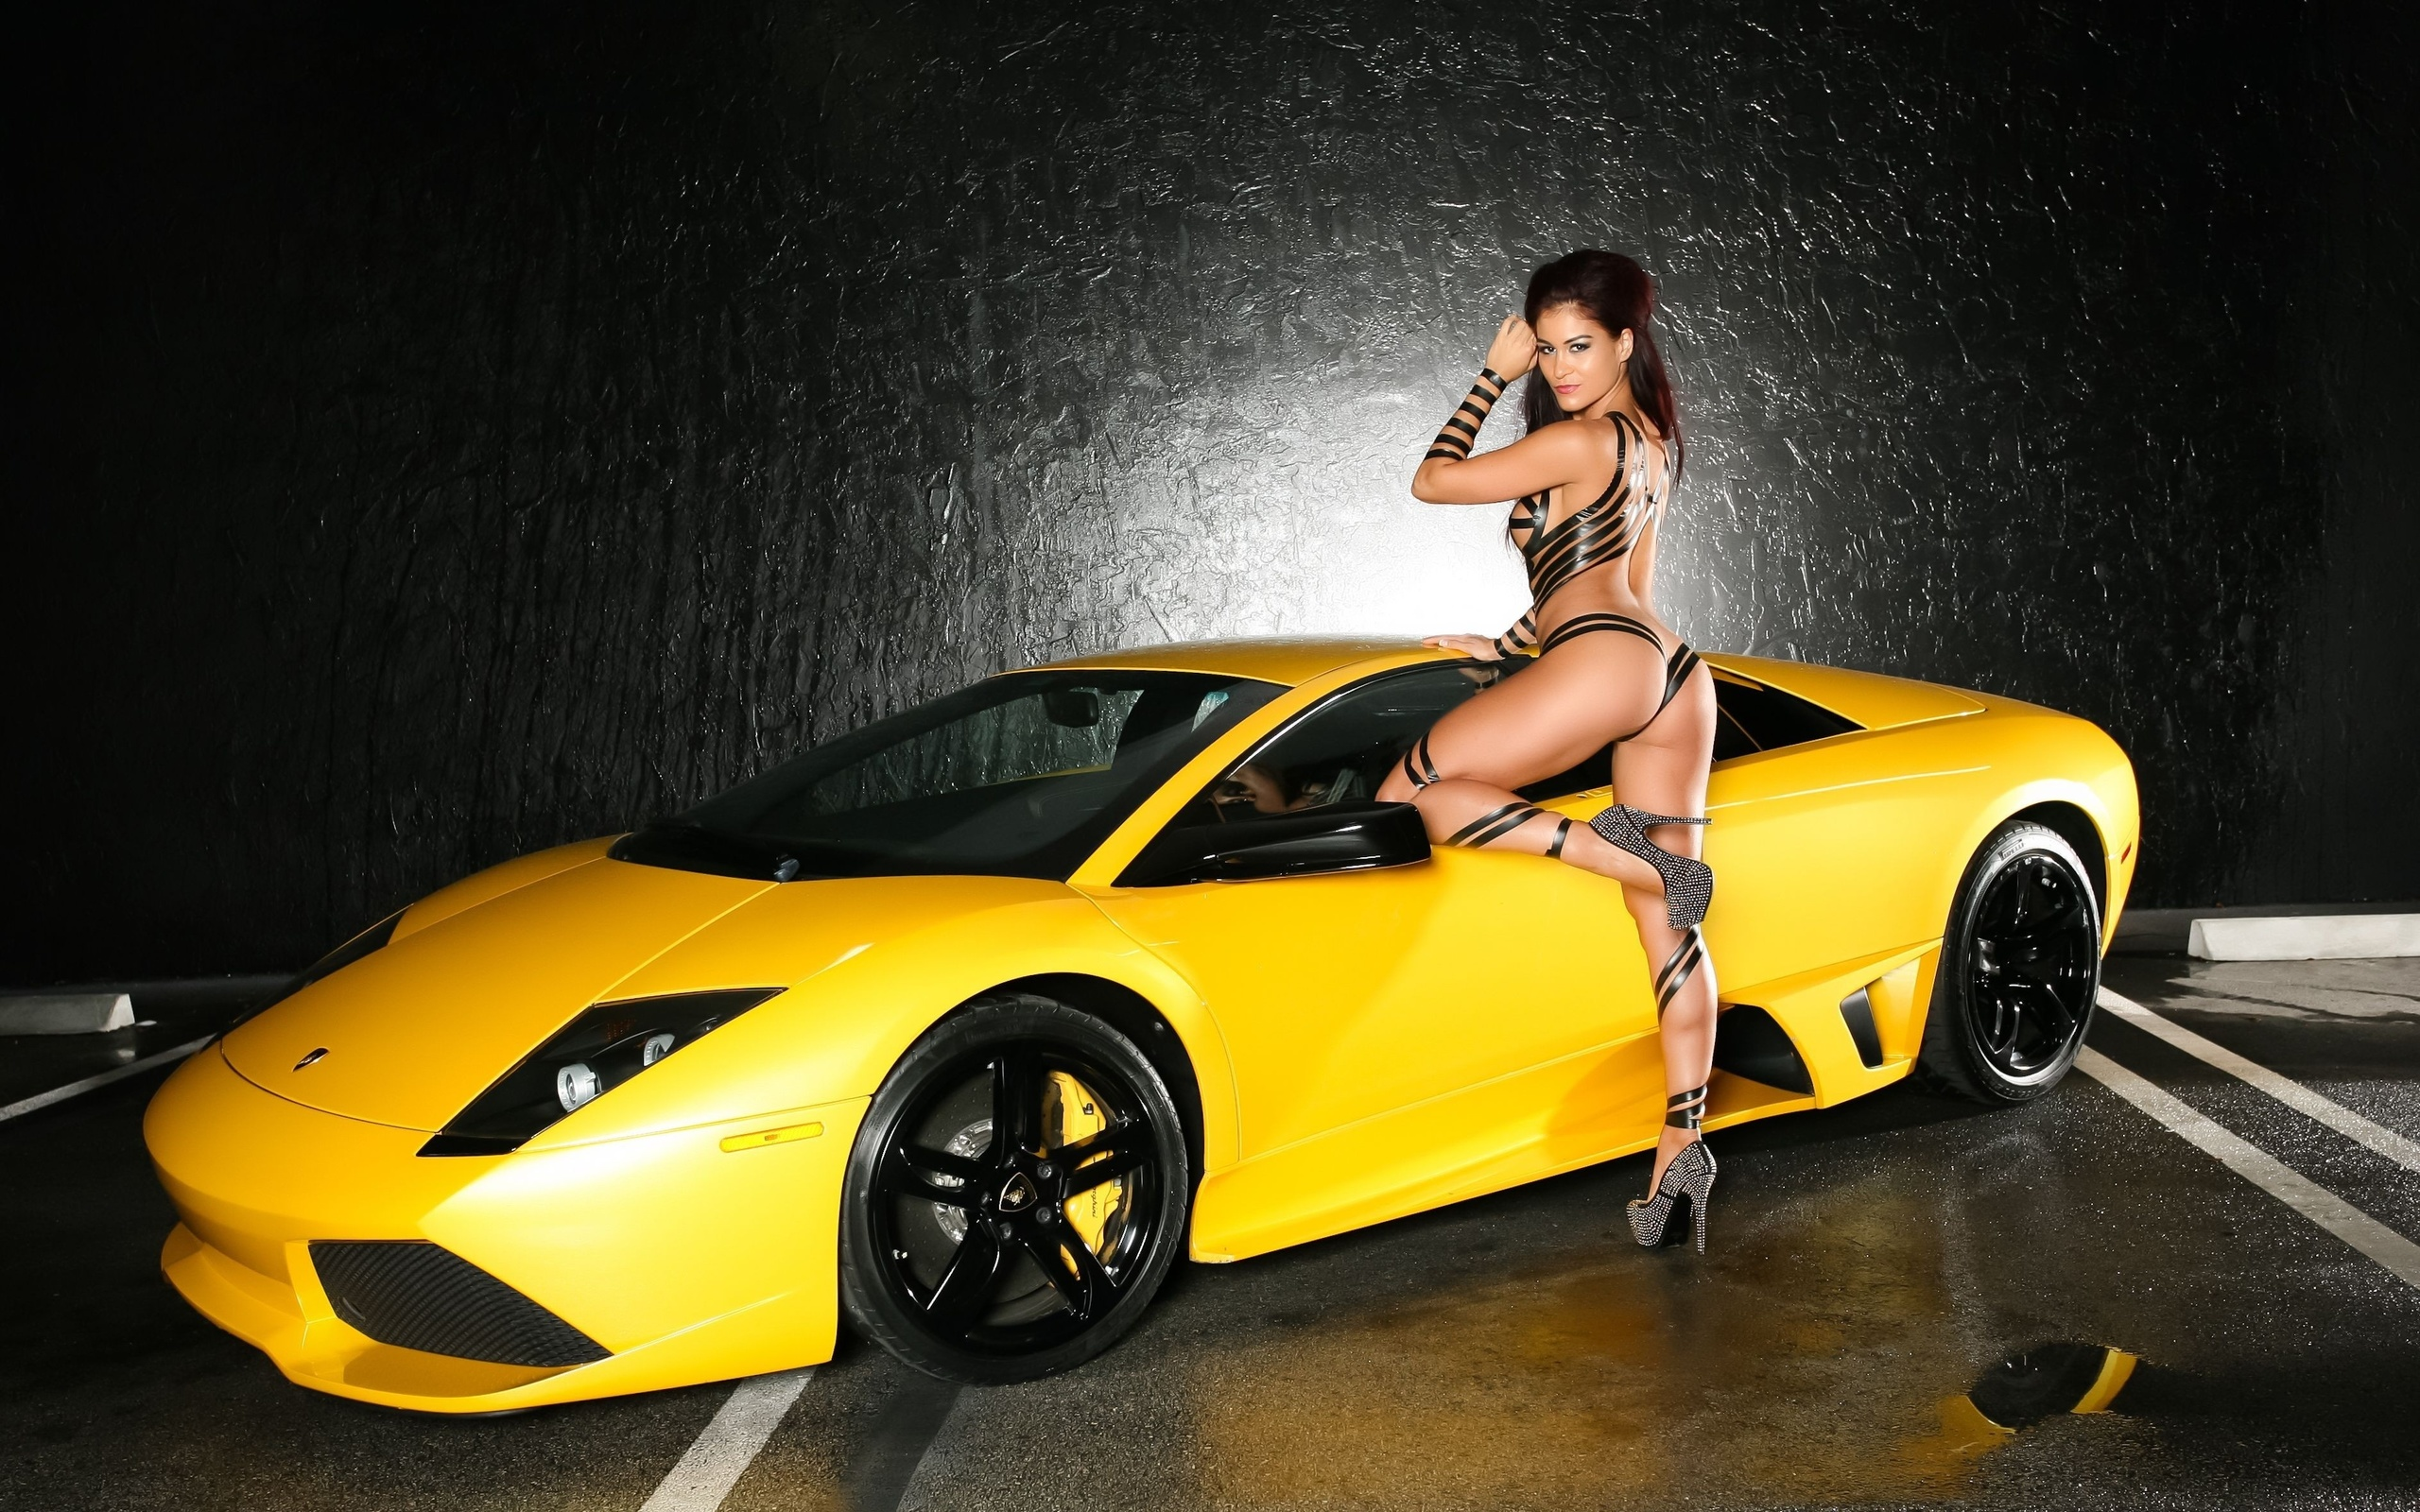 girls-nude-chicks-with-a-lamborghini